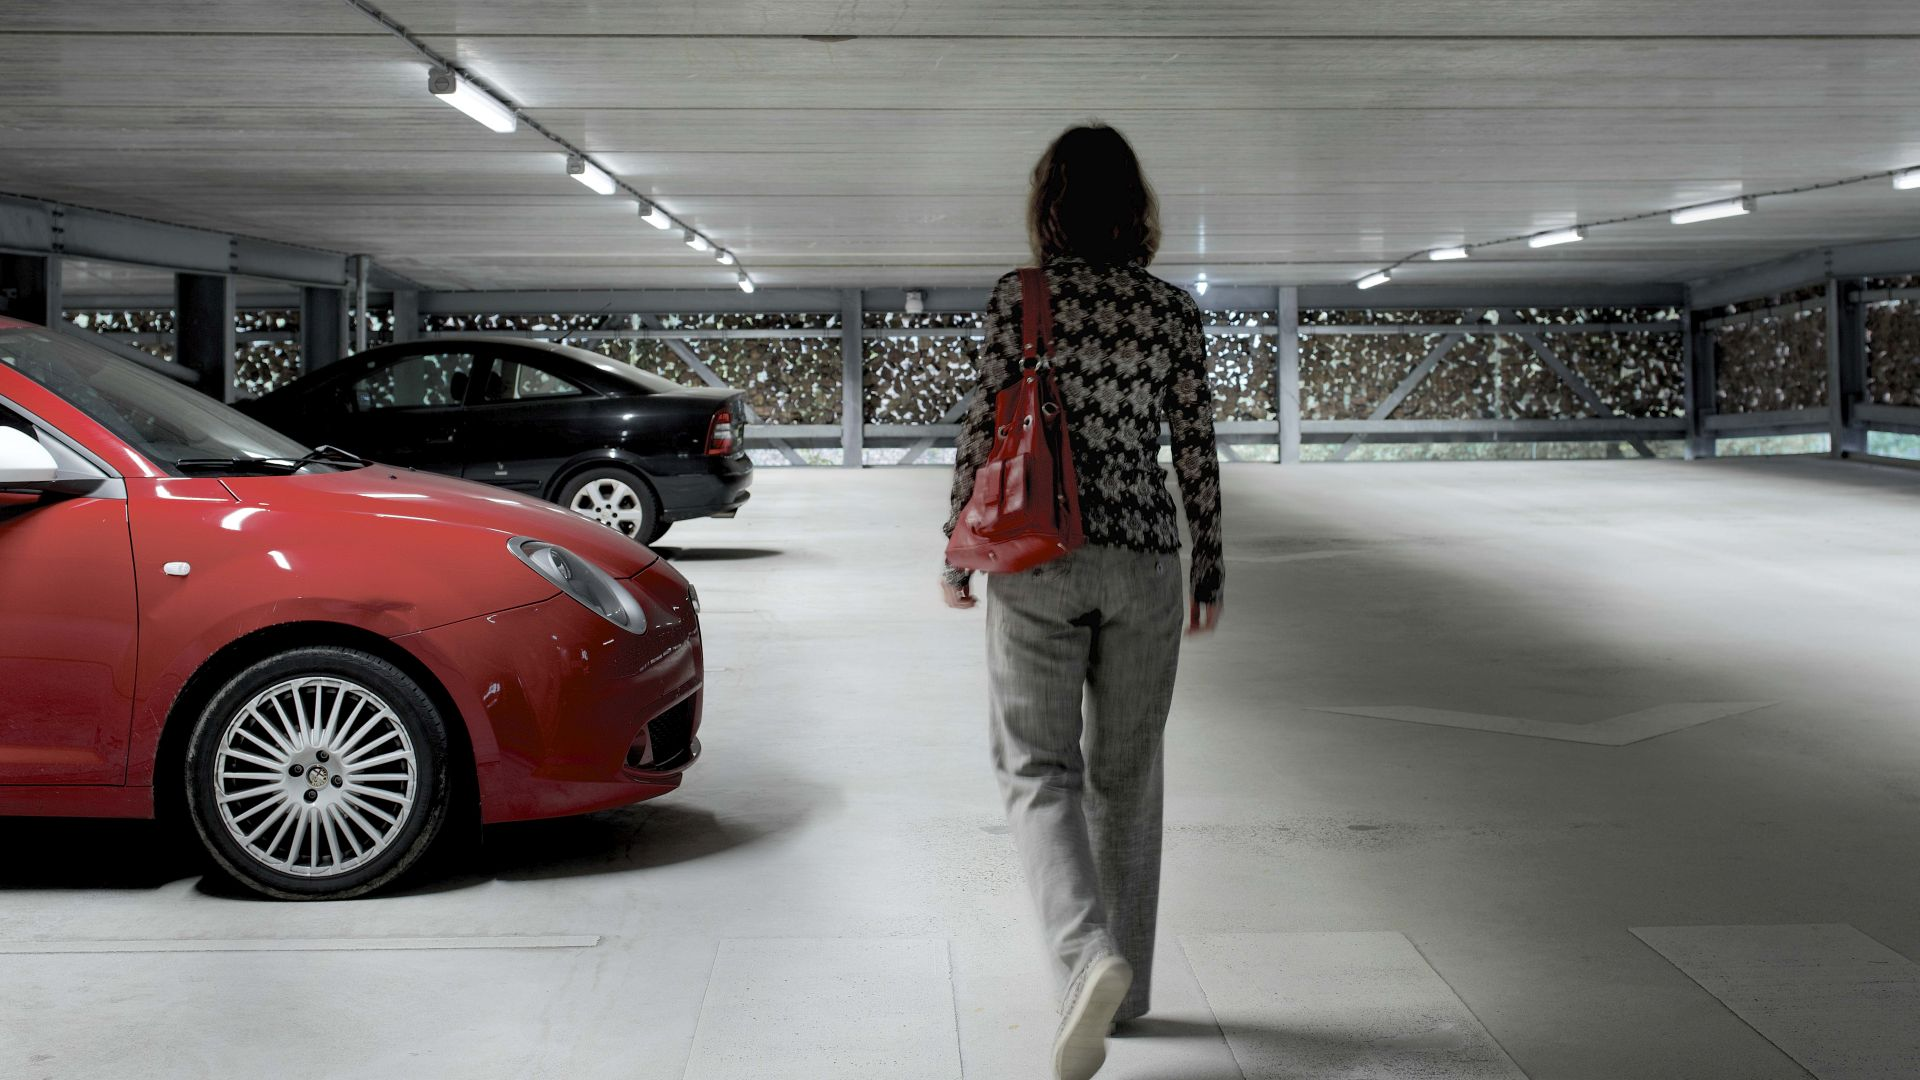 Philips_Lighting_parking_garages_High_Tech_Campus_Eindhoven